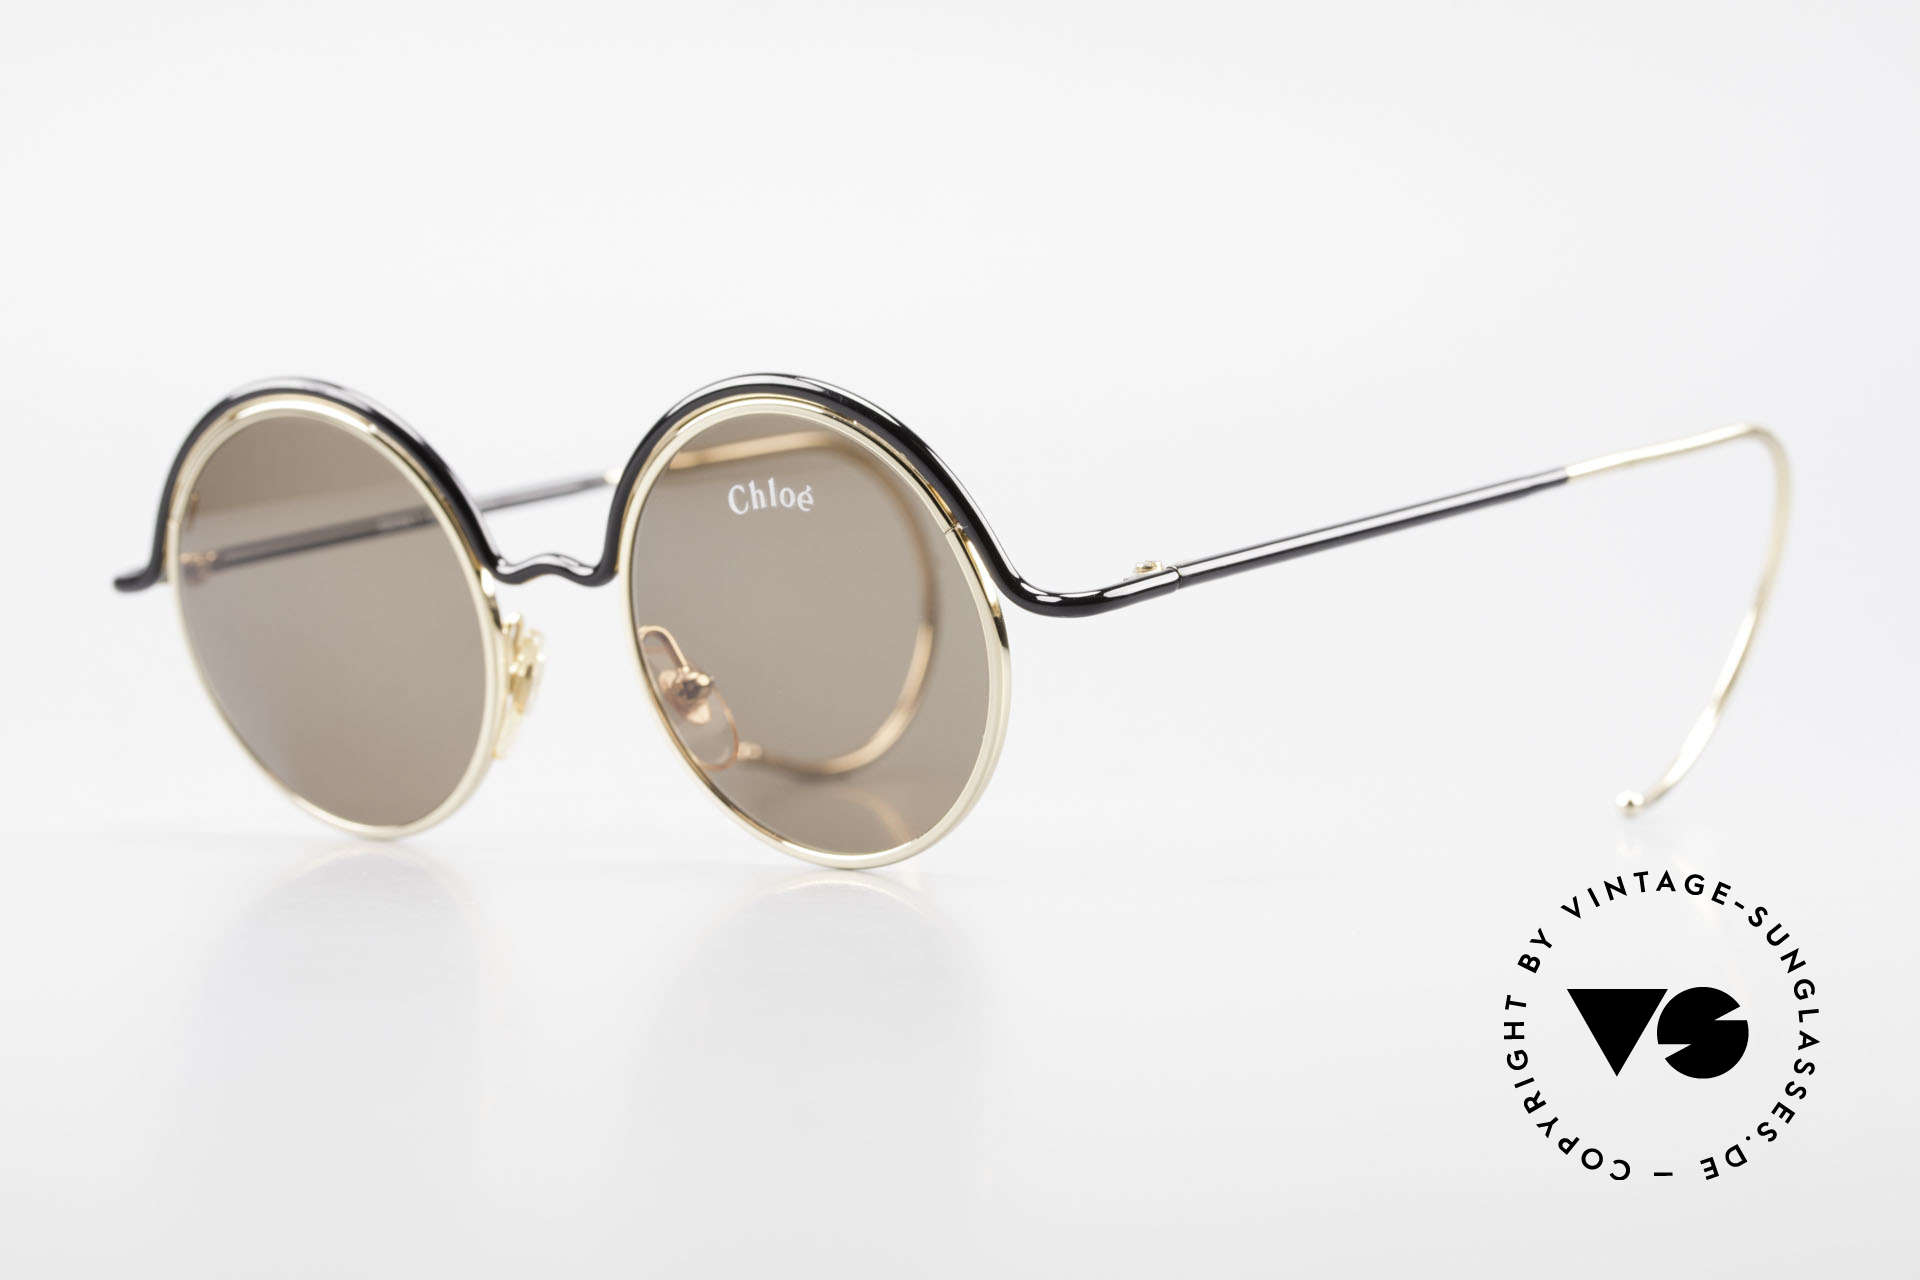 Chloe Show 1 Round Ladies Sunglasses 90's, very elegant frame coloring in black and gold, Made for Women